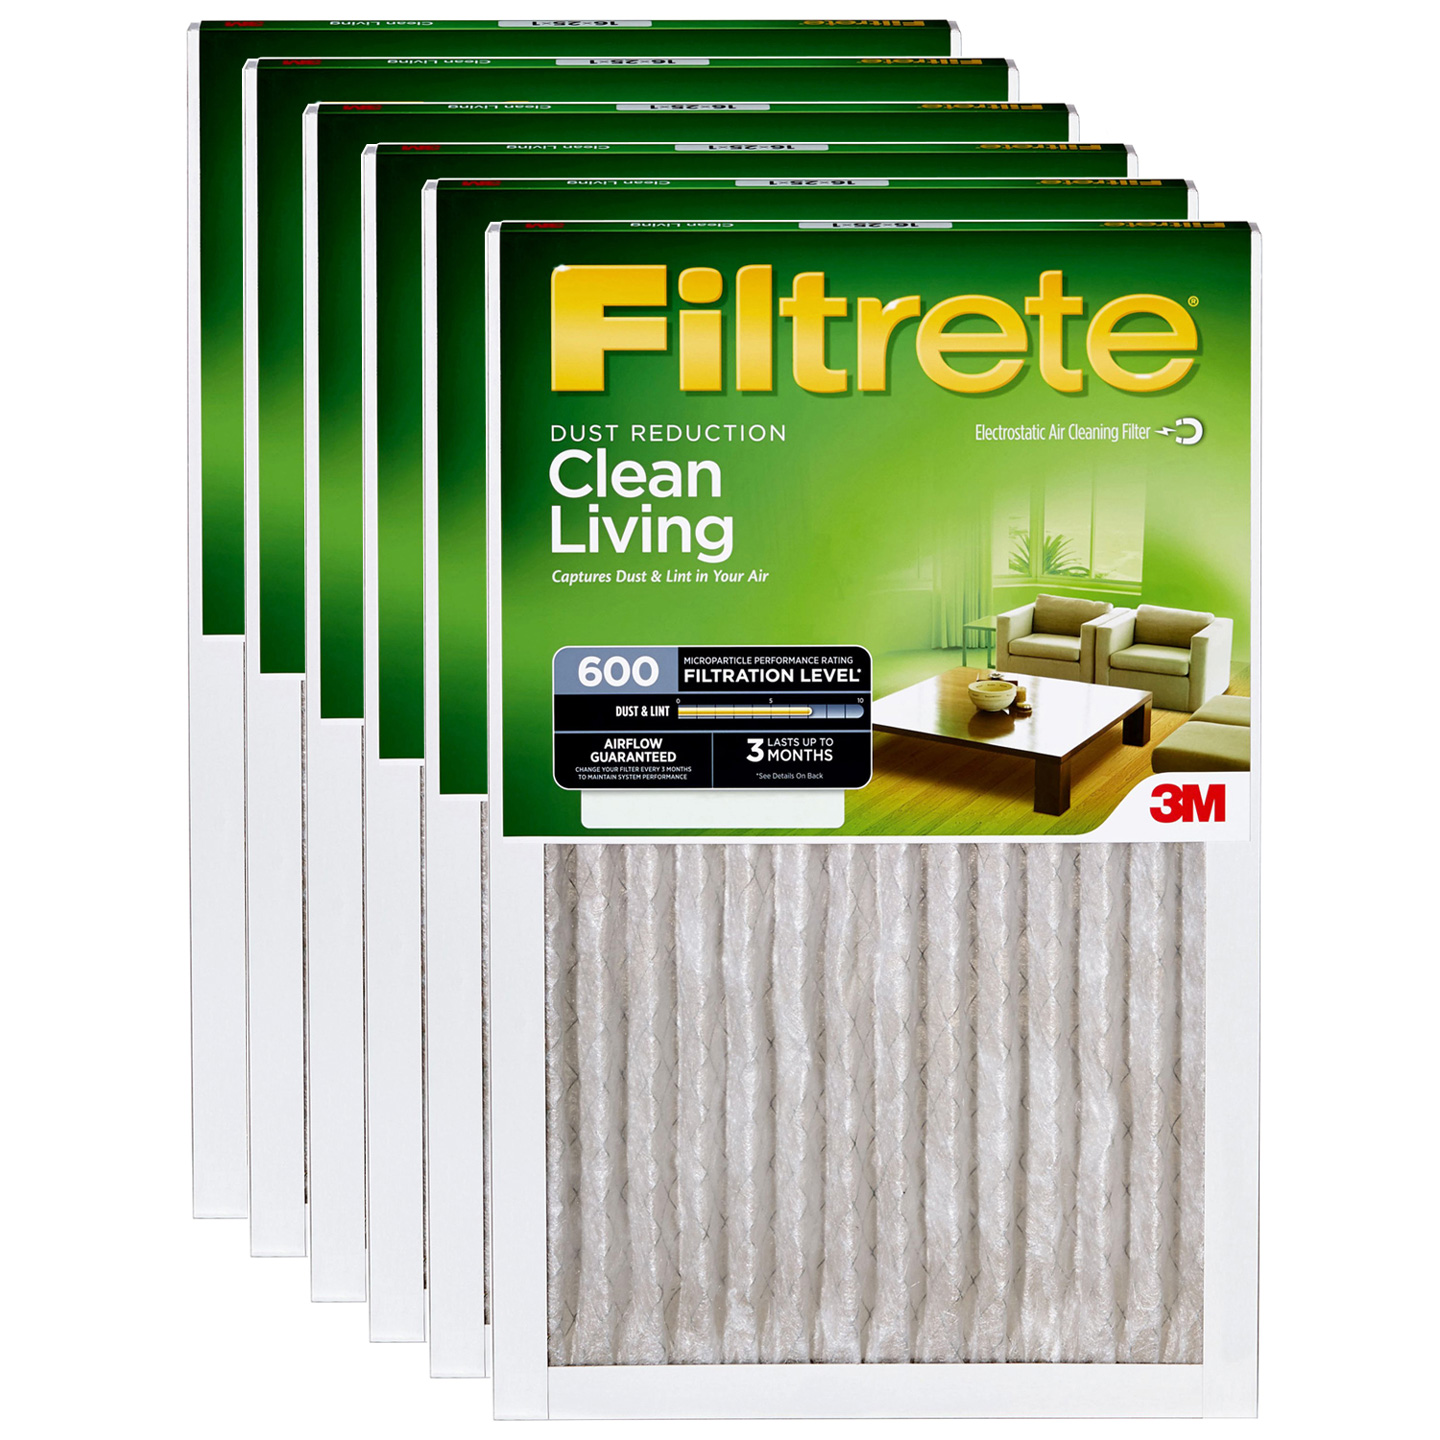 12x24x1 3M Filtrete Dust and Pollen Filter (6-Pack) FILTRETE_DUST_12x24x1_6_PACK